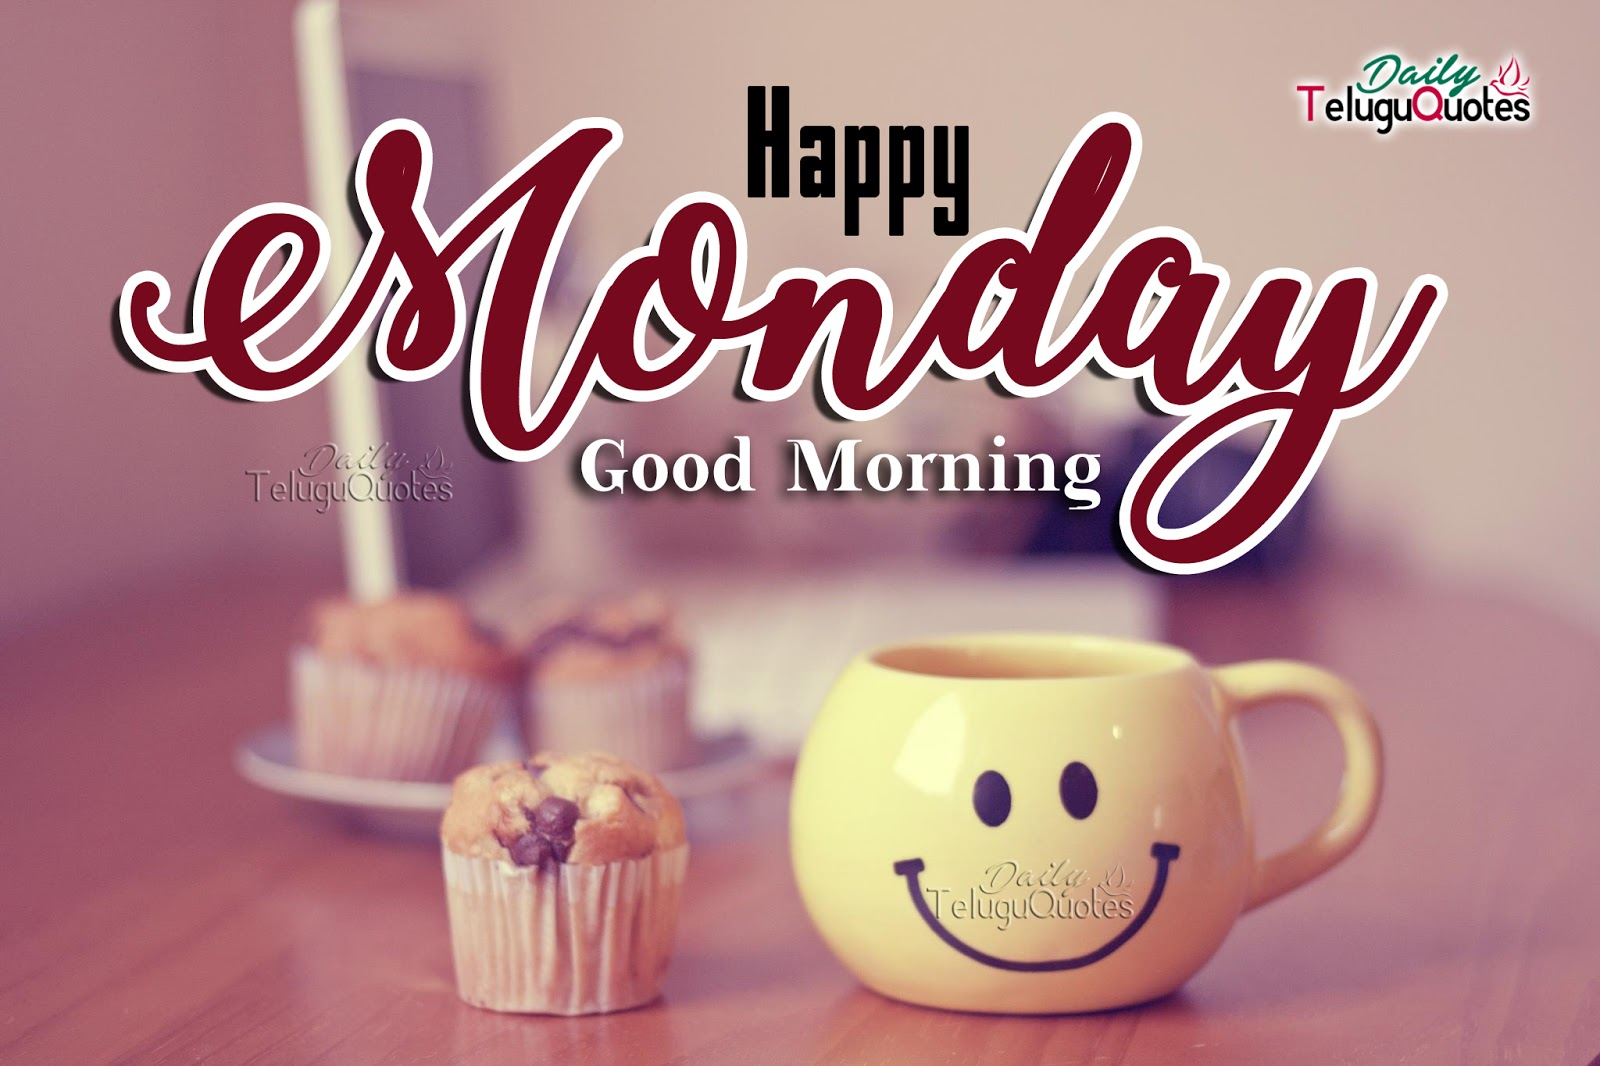 Happy Monday Good Morning Wishes Quotes And Greetings Hd Images